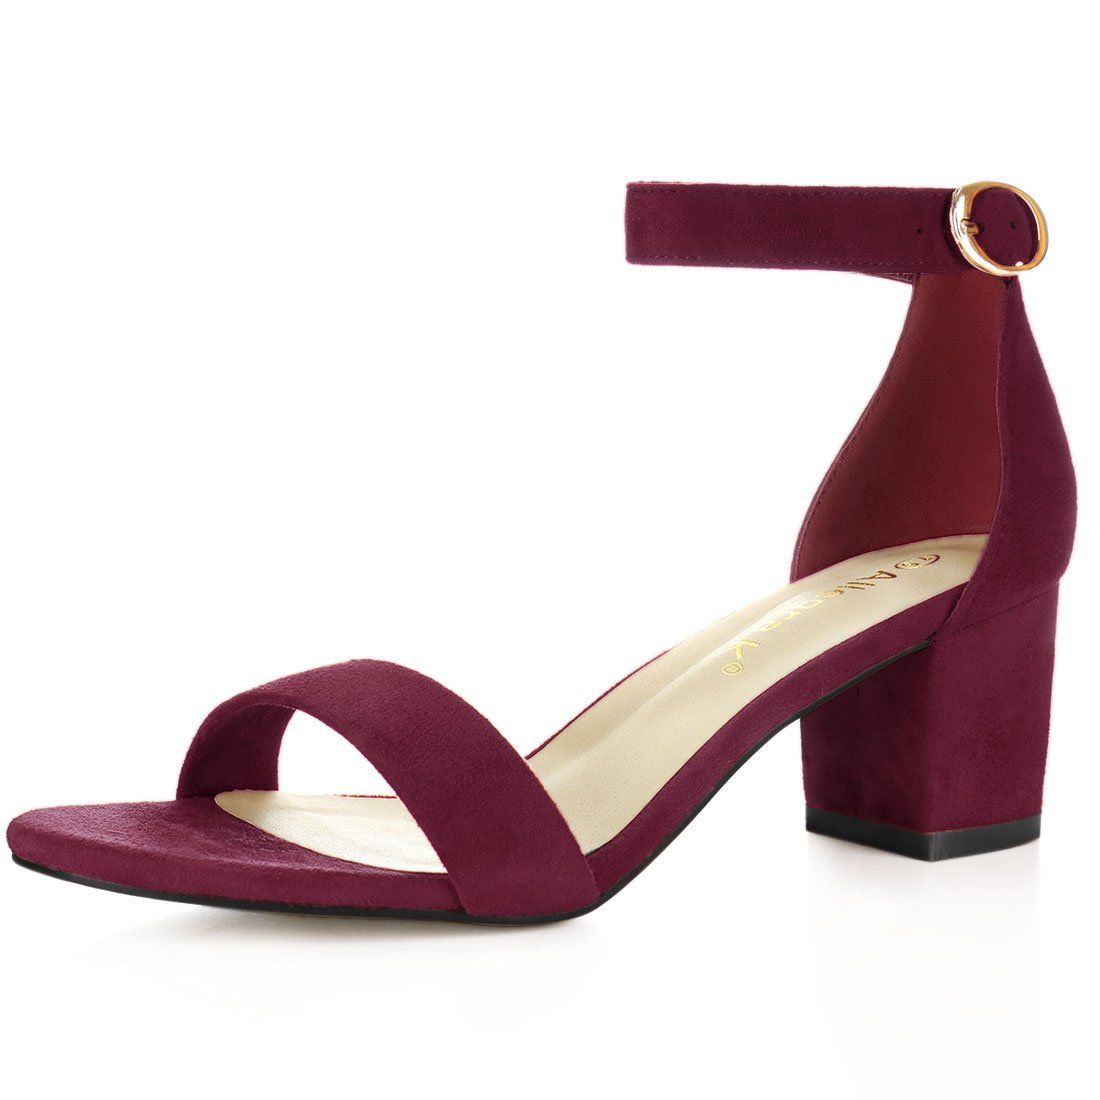 Allegra K Women's Open Toe Mid Block Heel Ankle Strap Sandals (Size US 6) Burgundy